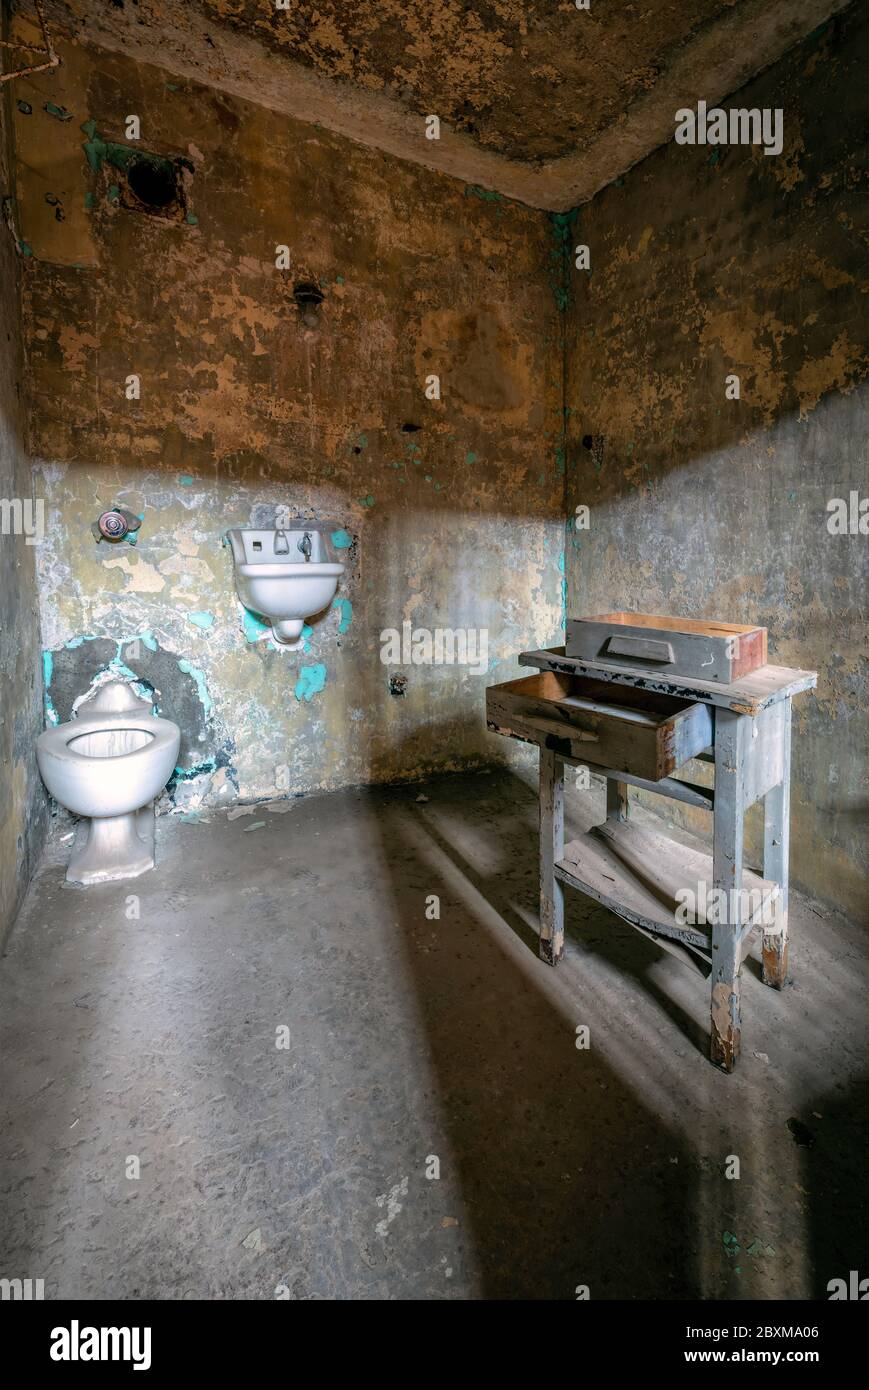 https www alamy com interior of a cell in an abandoned prison with an old toilet sink and desk image360635302 html